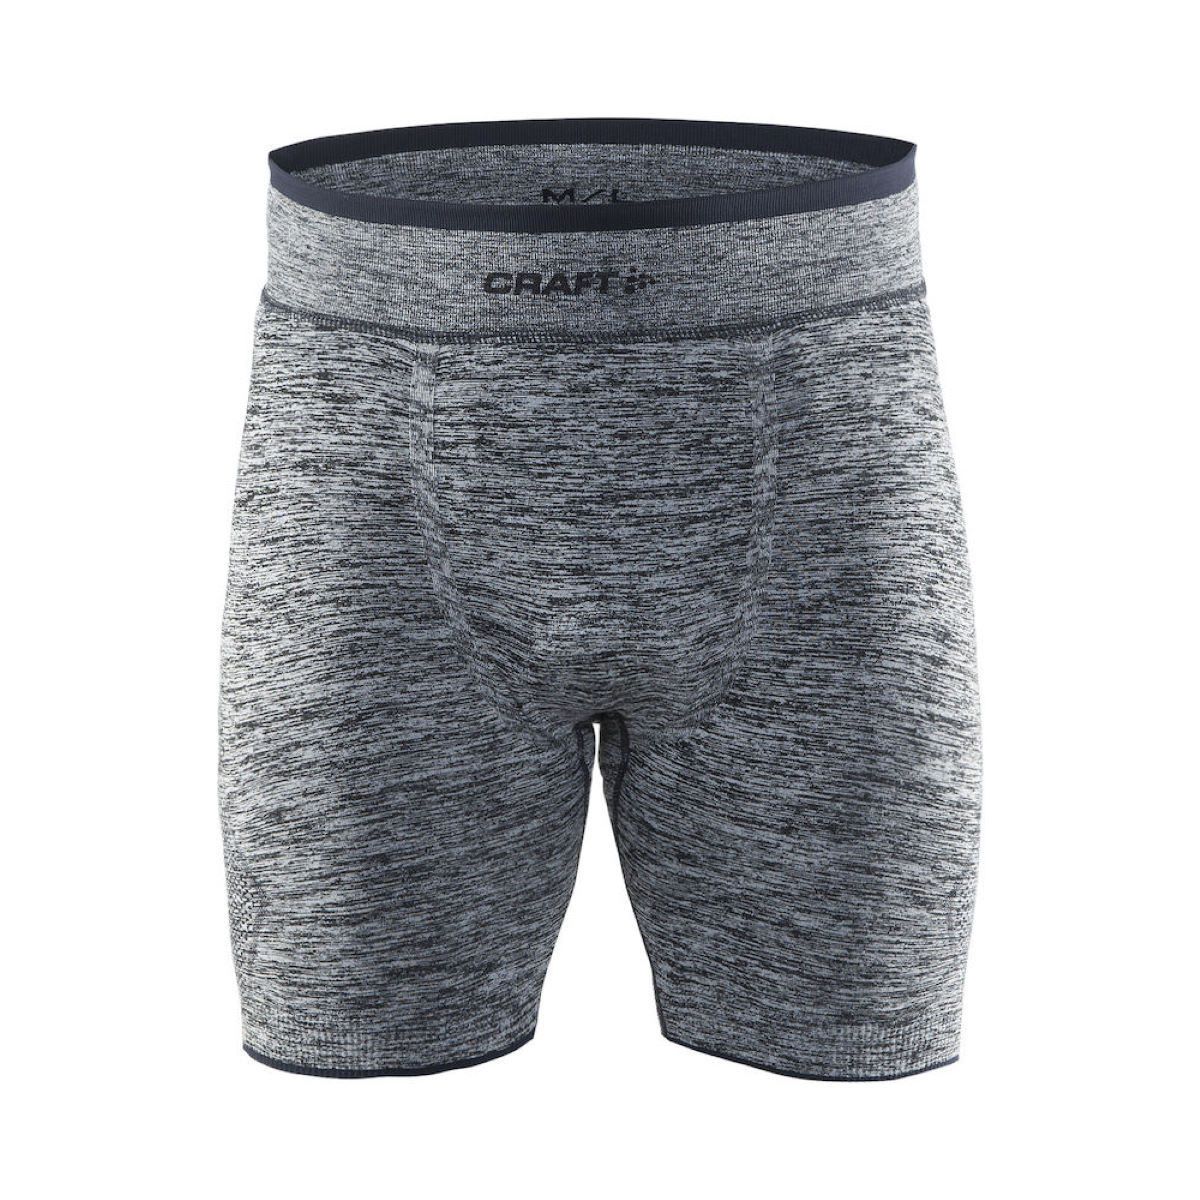 Boxer cycliste Craft Active Comfort - XL/2XL Noir  Vêtements de corps